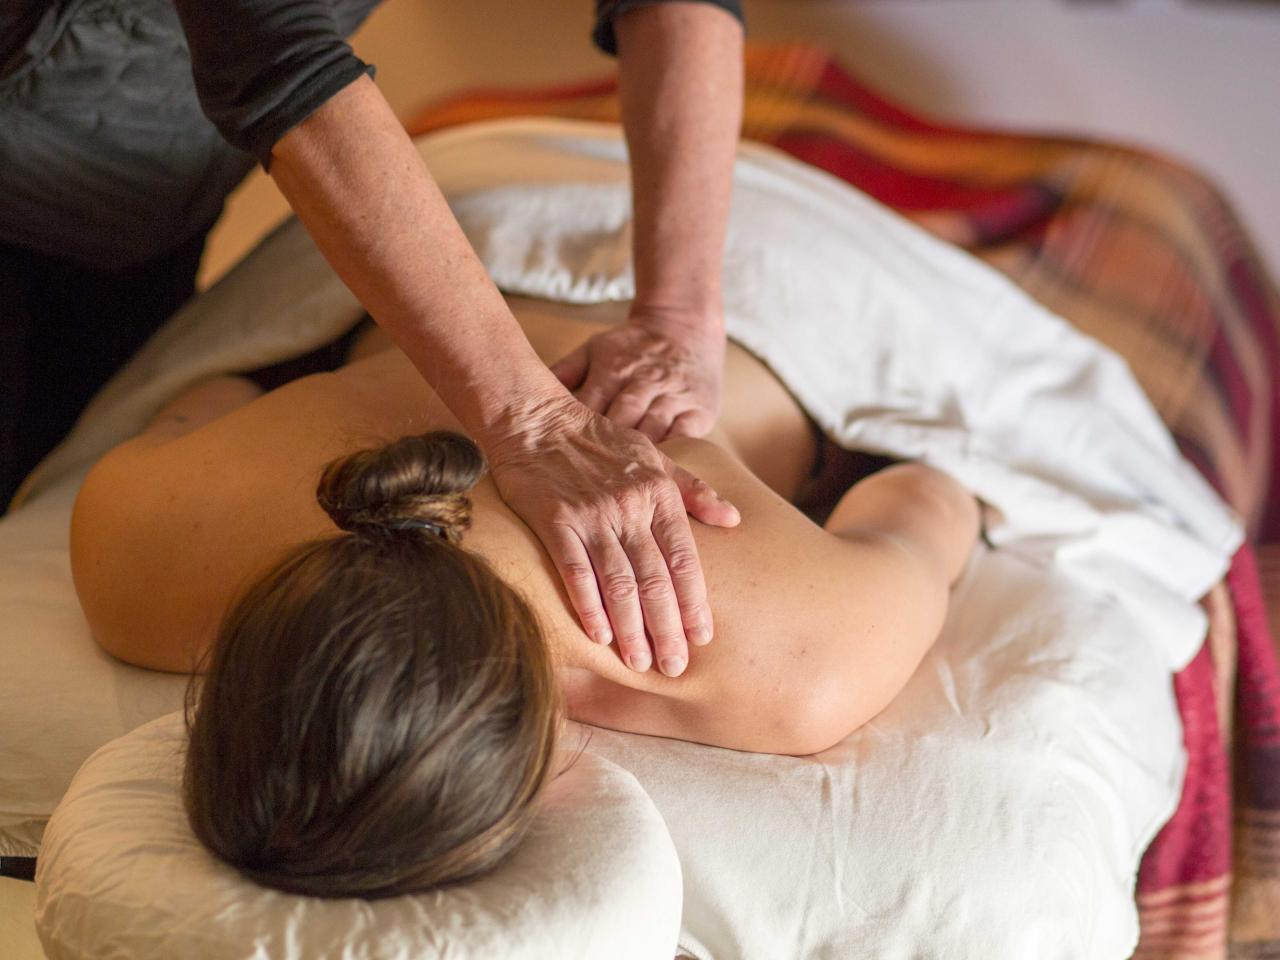 Restorative and sports massage after skiing at Mike Wiegele Heli-ski Resort, BC, Canada